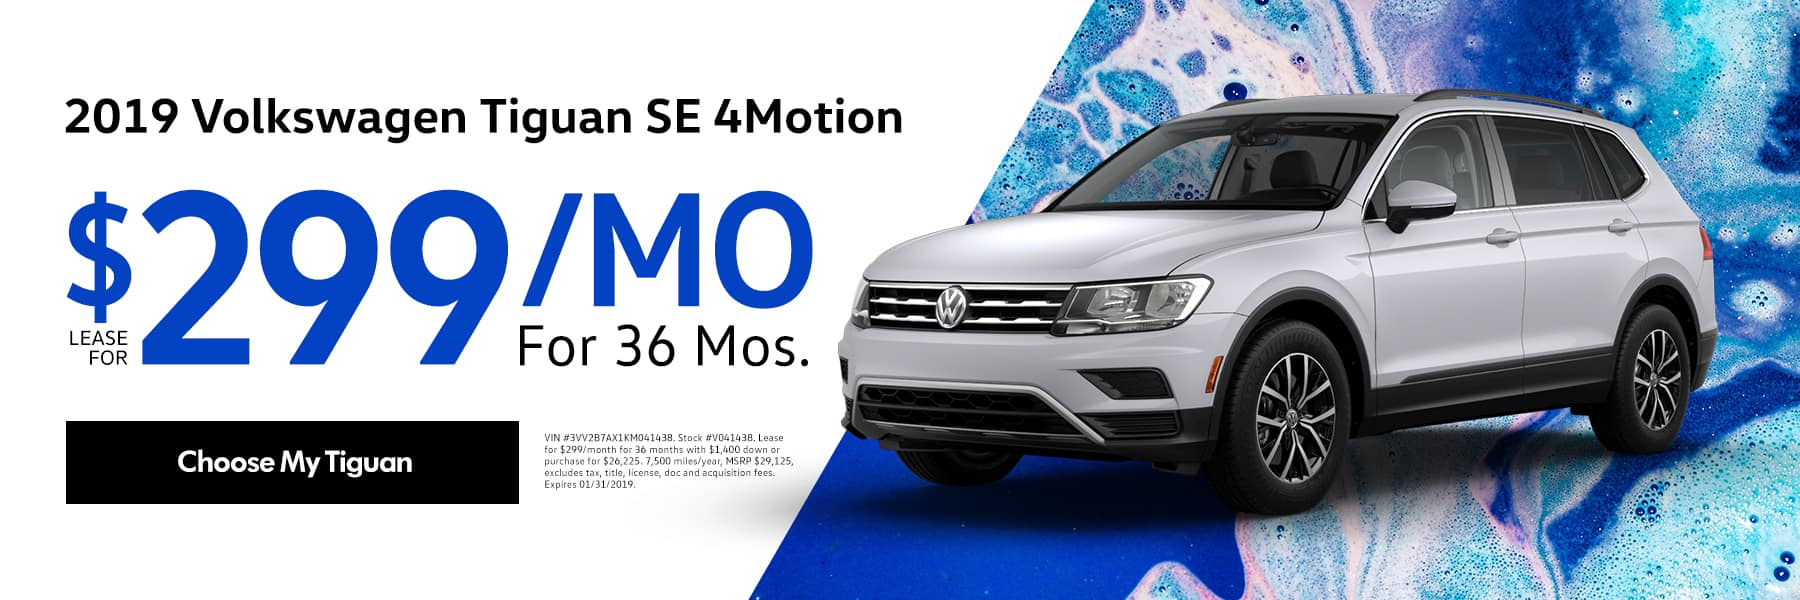 2019 Volkswagen Tiguan SE 4Motion - Lease for $299/month for 36 months - Choose My Tiguan